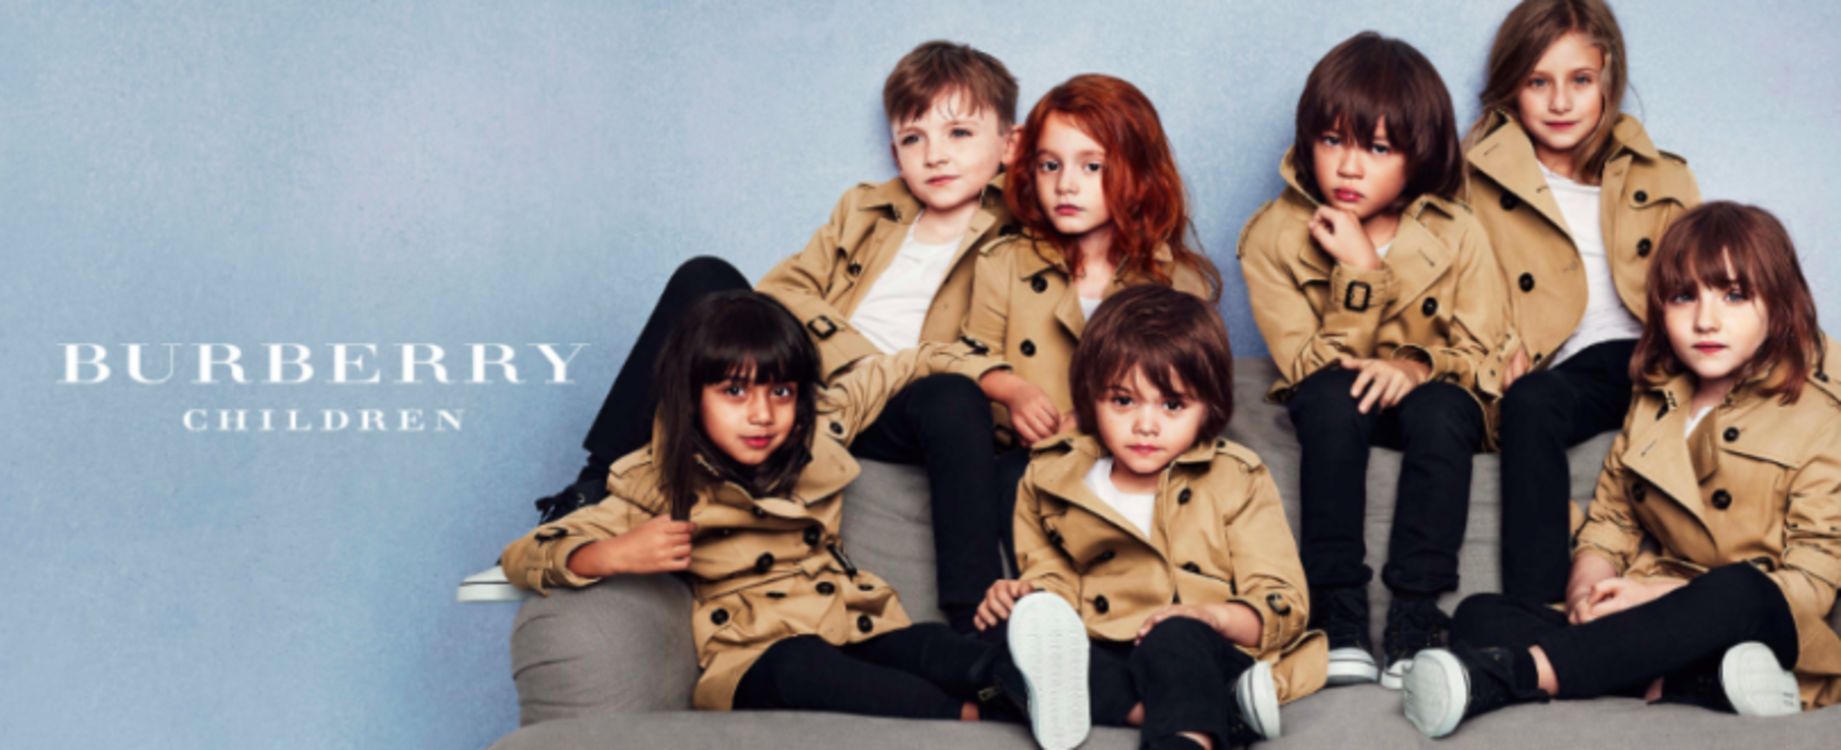 GEPPETTO for fashion-kids 0 - 16 a Innsbruck (Image 5)